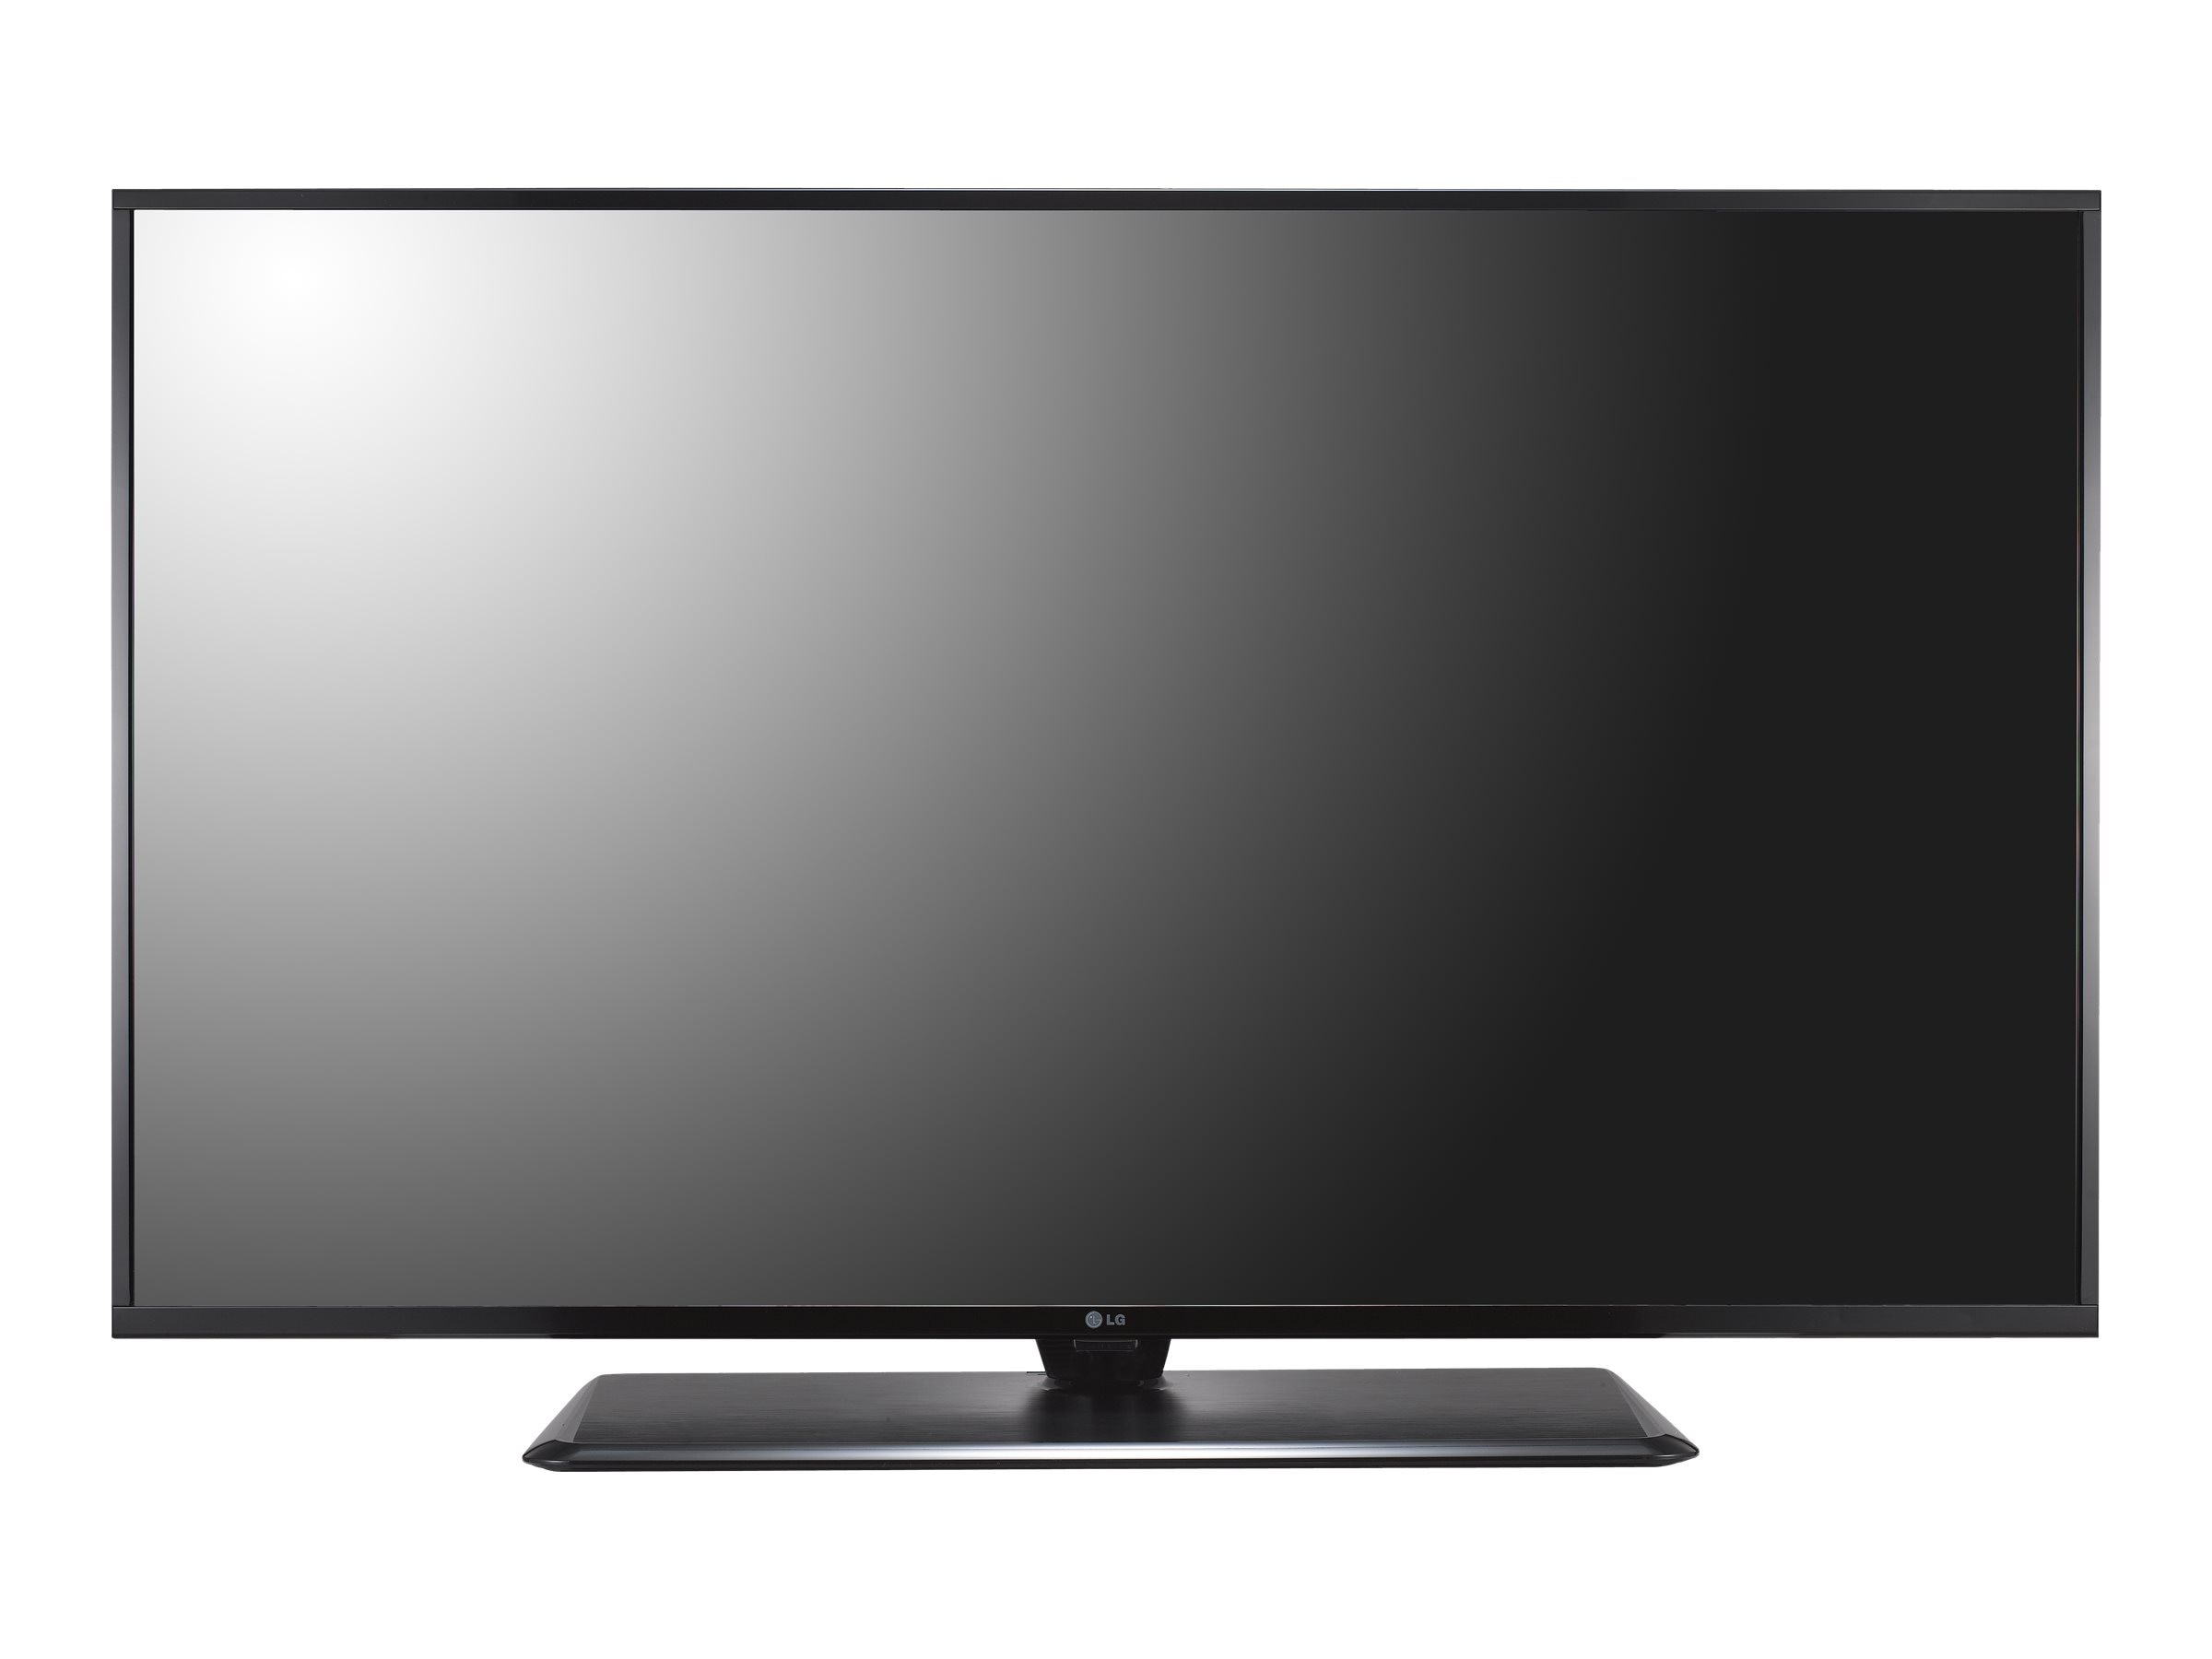 LG 48.5 LX560H Full HD LED-LCD Hospitality TV, Black